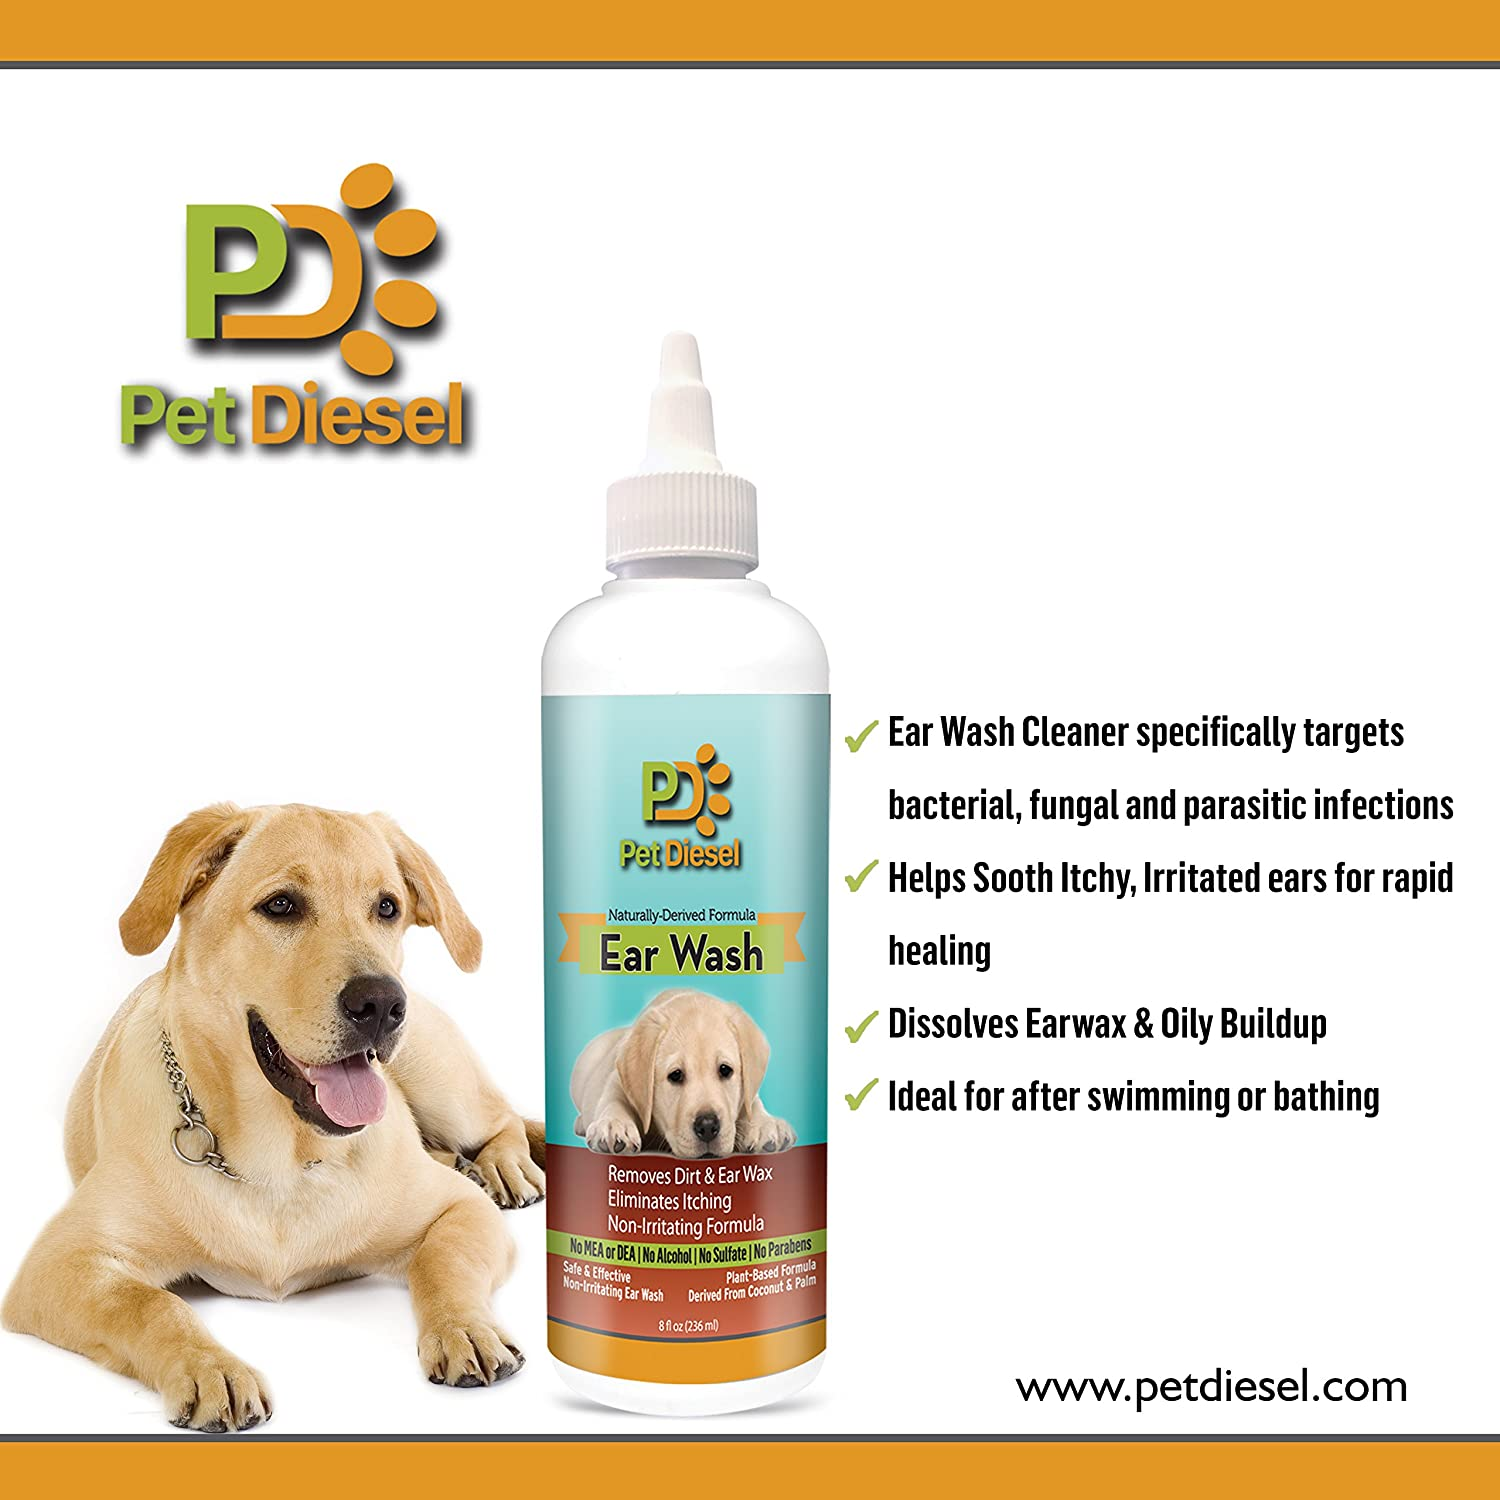 Amazon EcoEars Dog Ear Cleanser Ideal For Ear Wax Removal